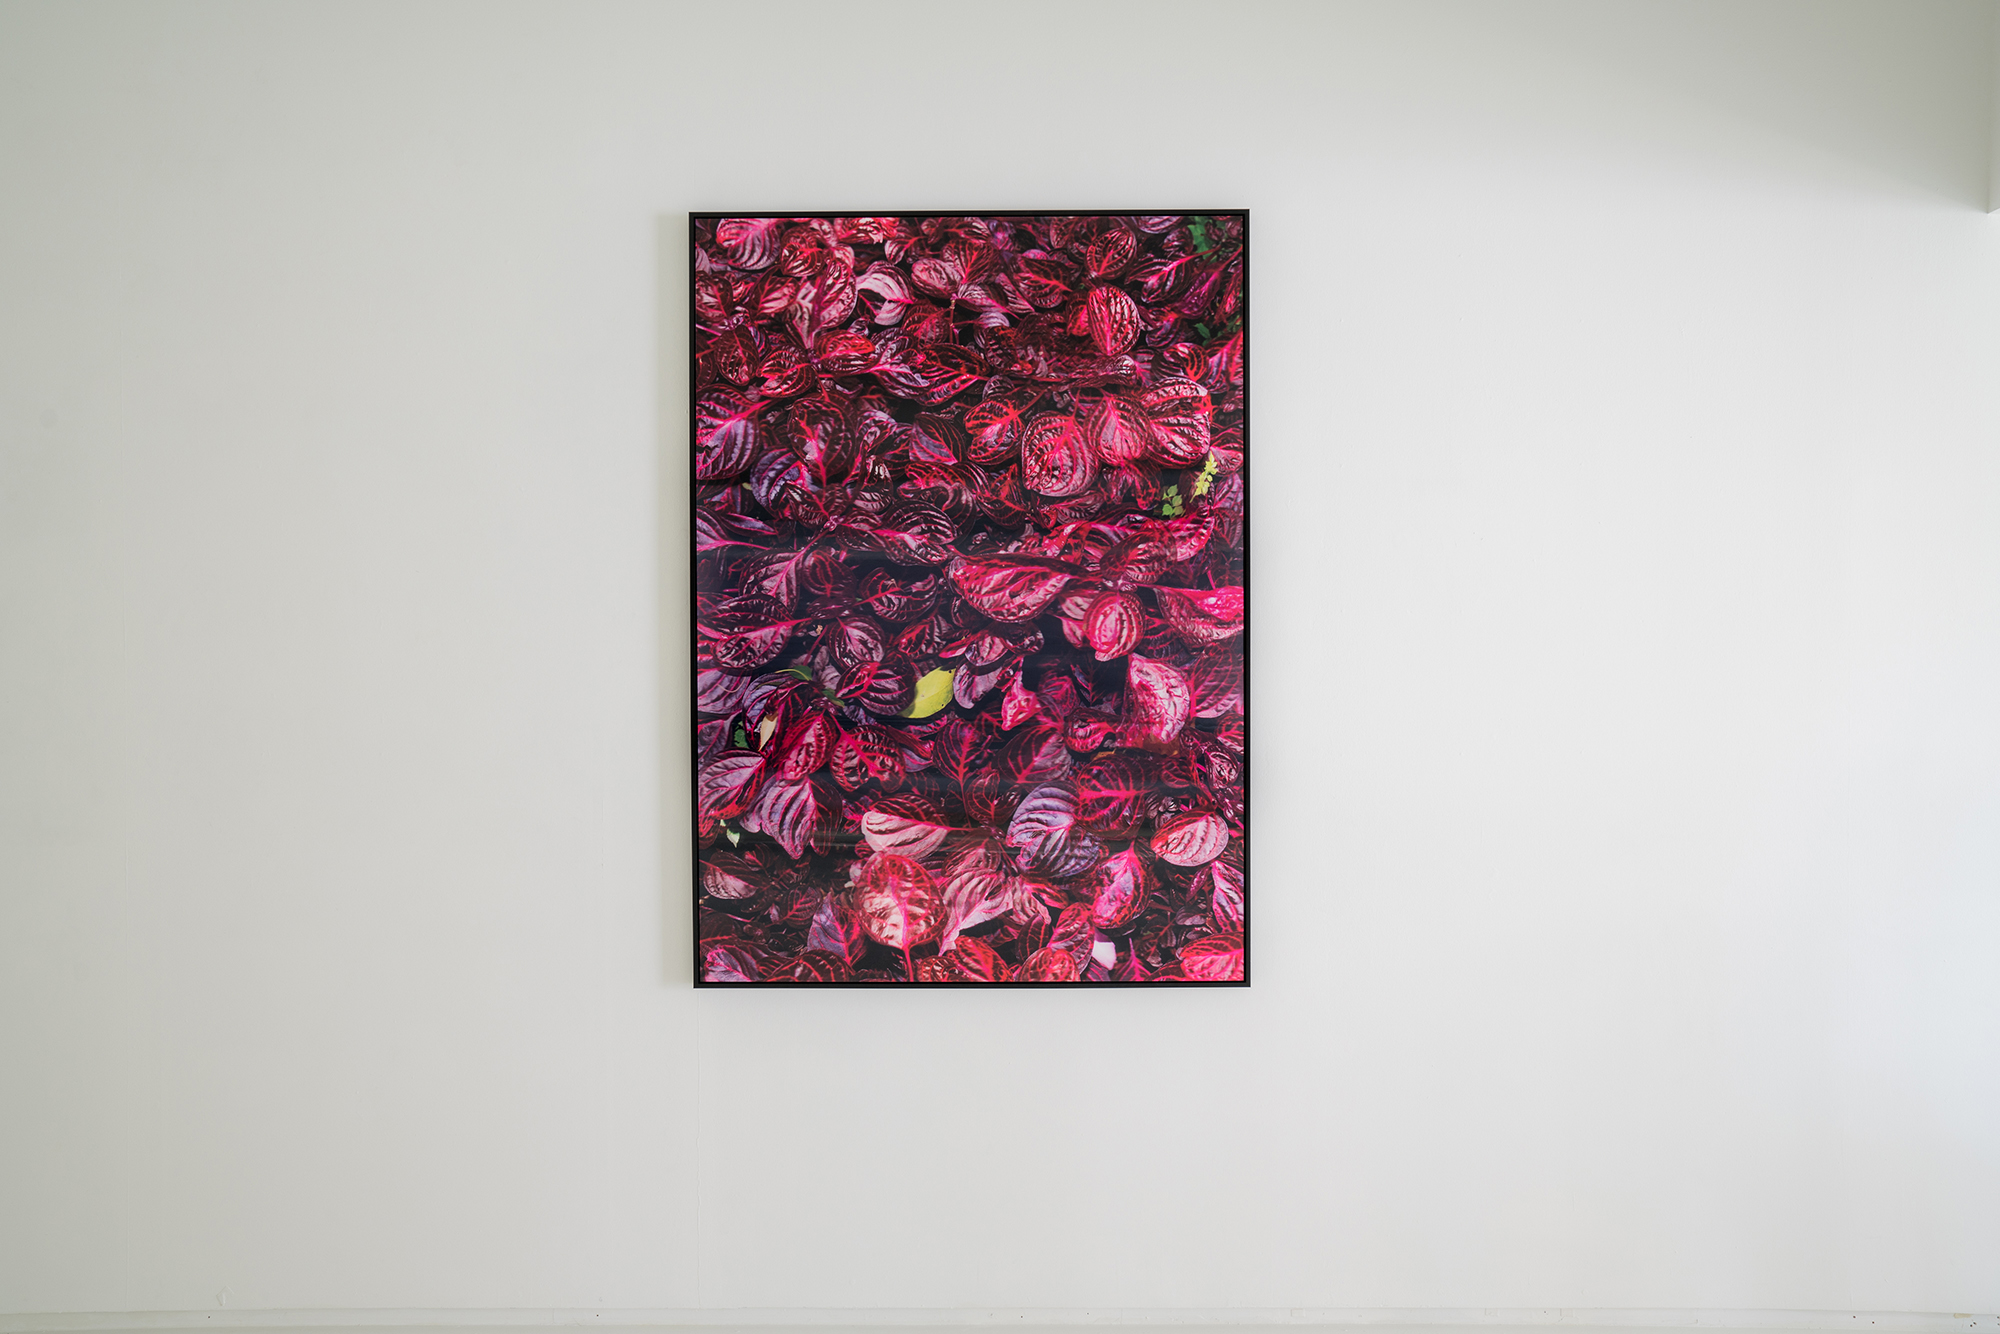 Kai Wasikowski, Looking with a forked tongue, 2016, pure pigment on archival paper, acrylic lenticular lens, 165 x 118 cm.